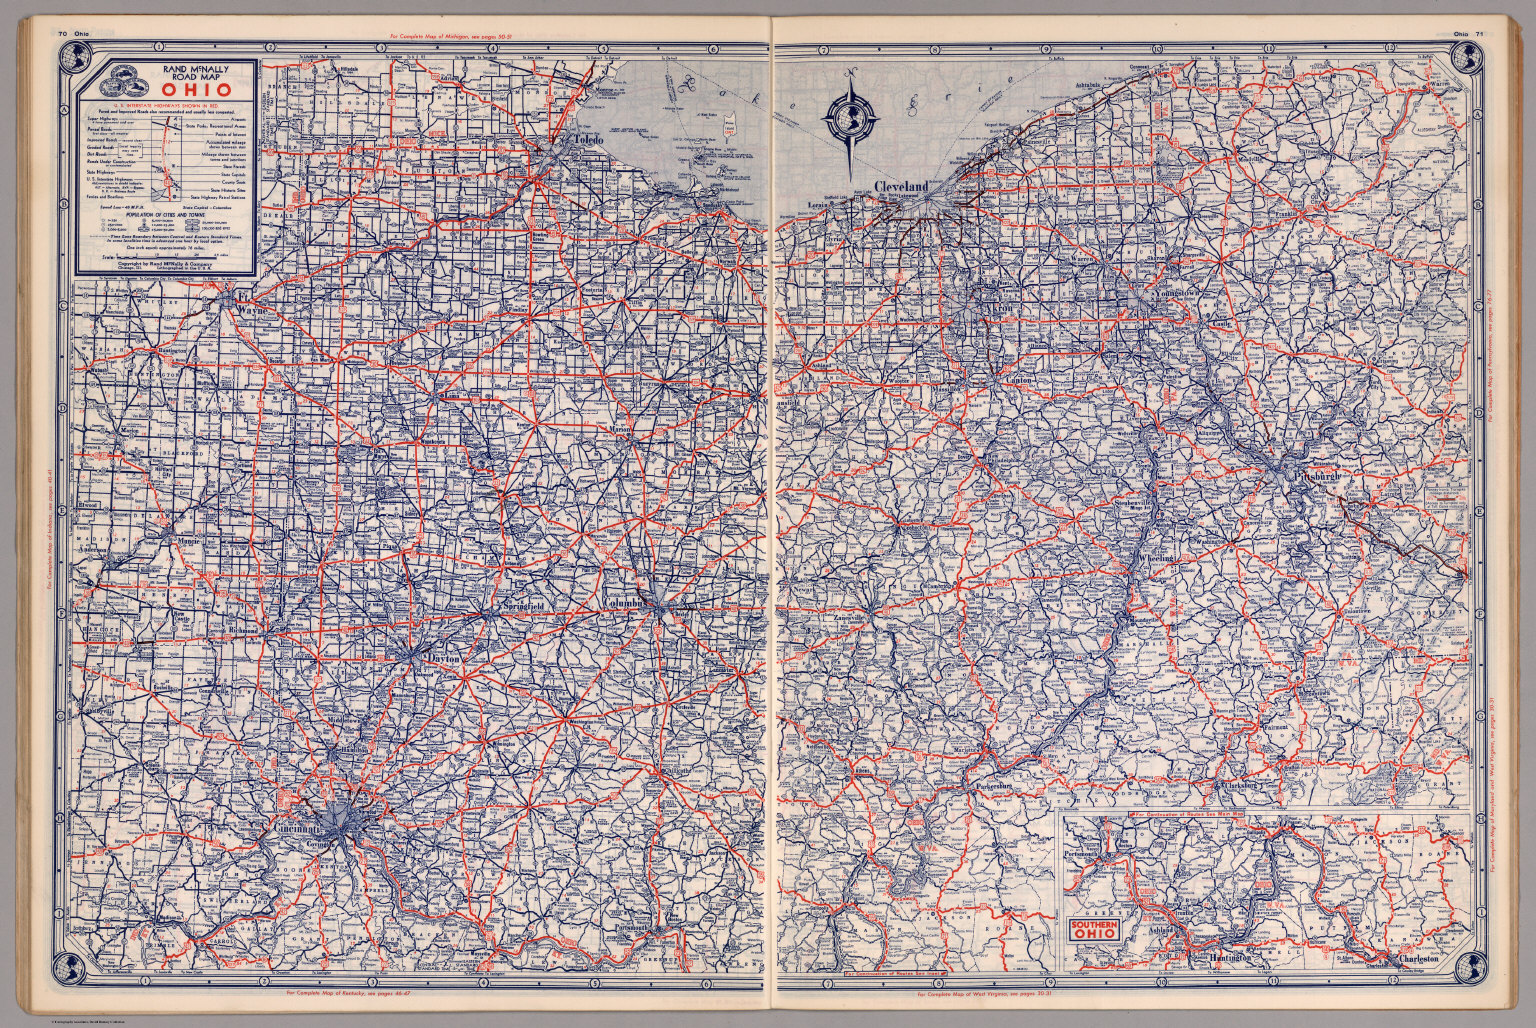 Road map of Ohio David Rumsey Historical Map Collection